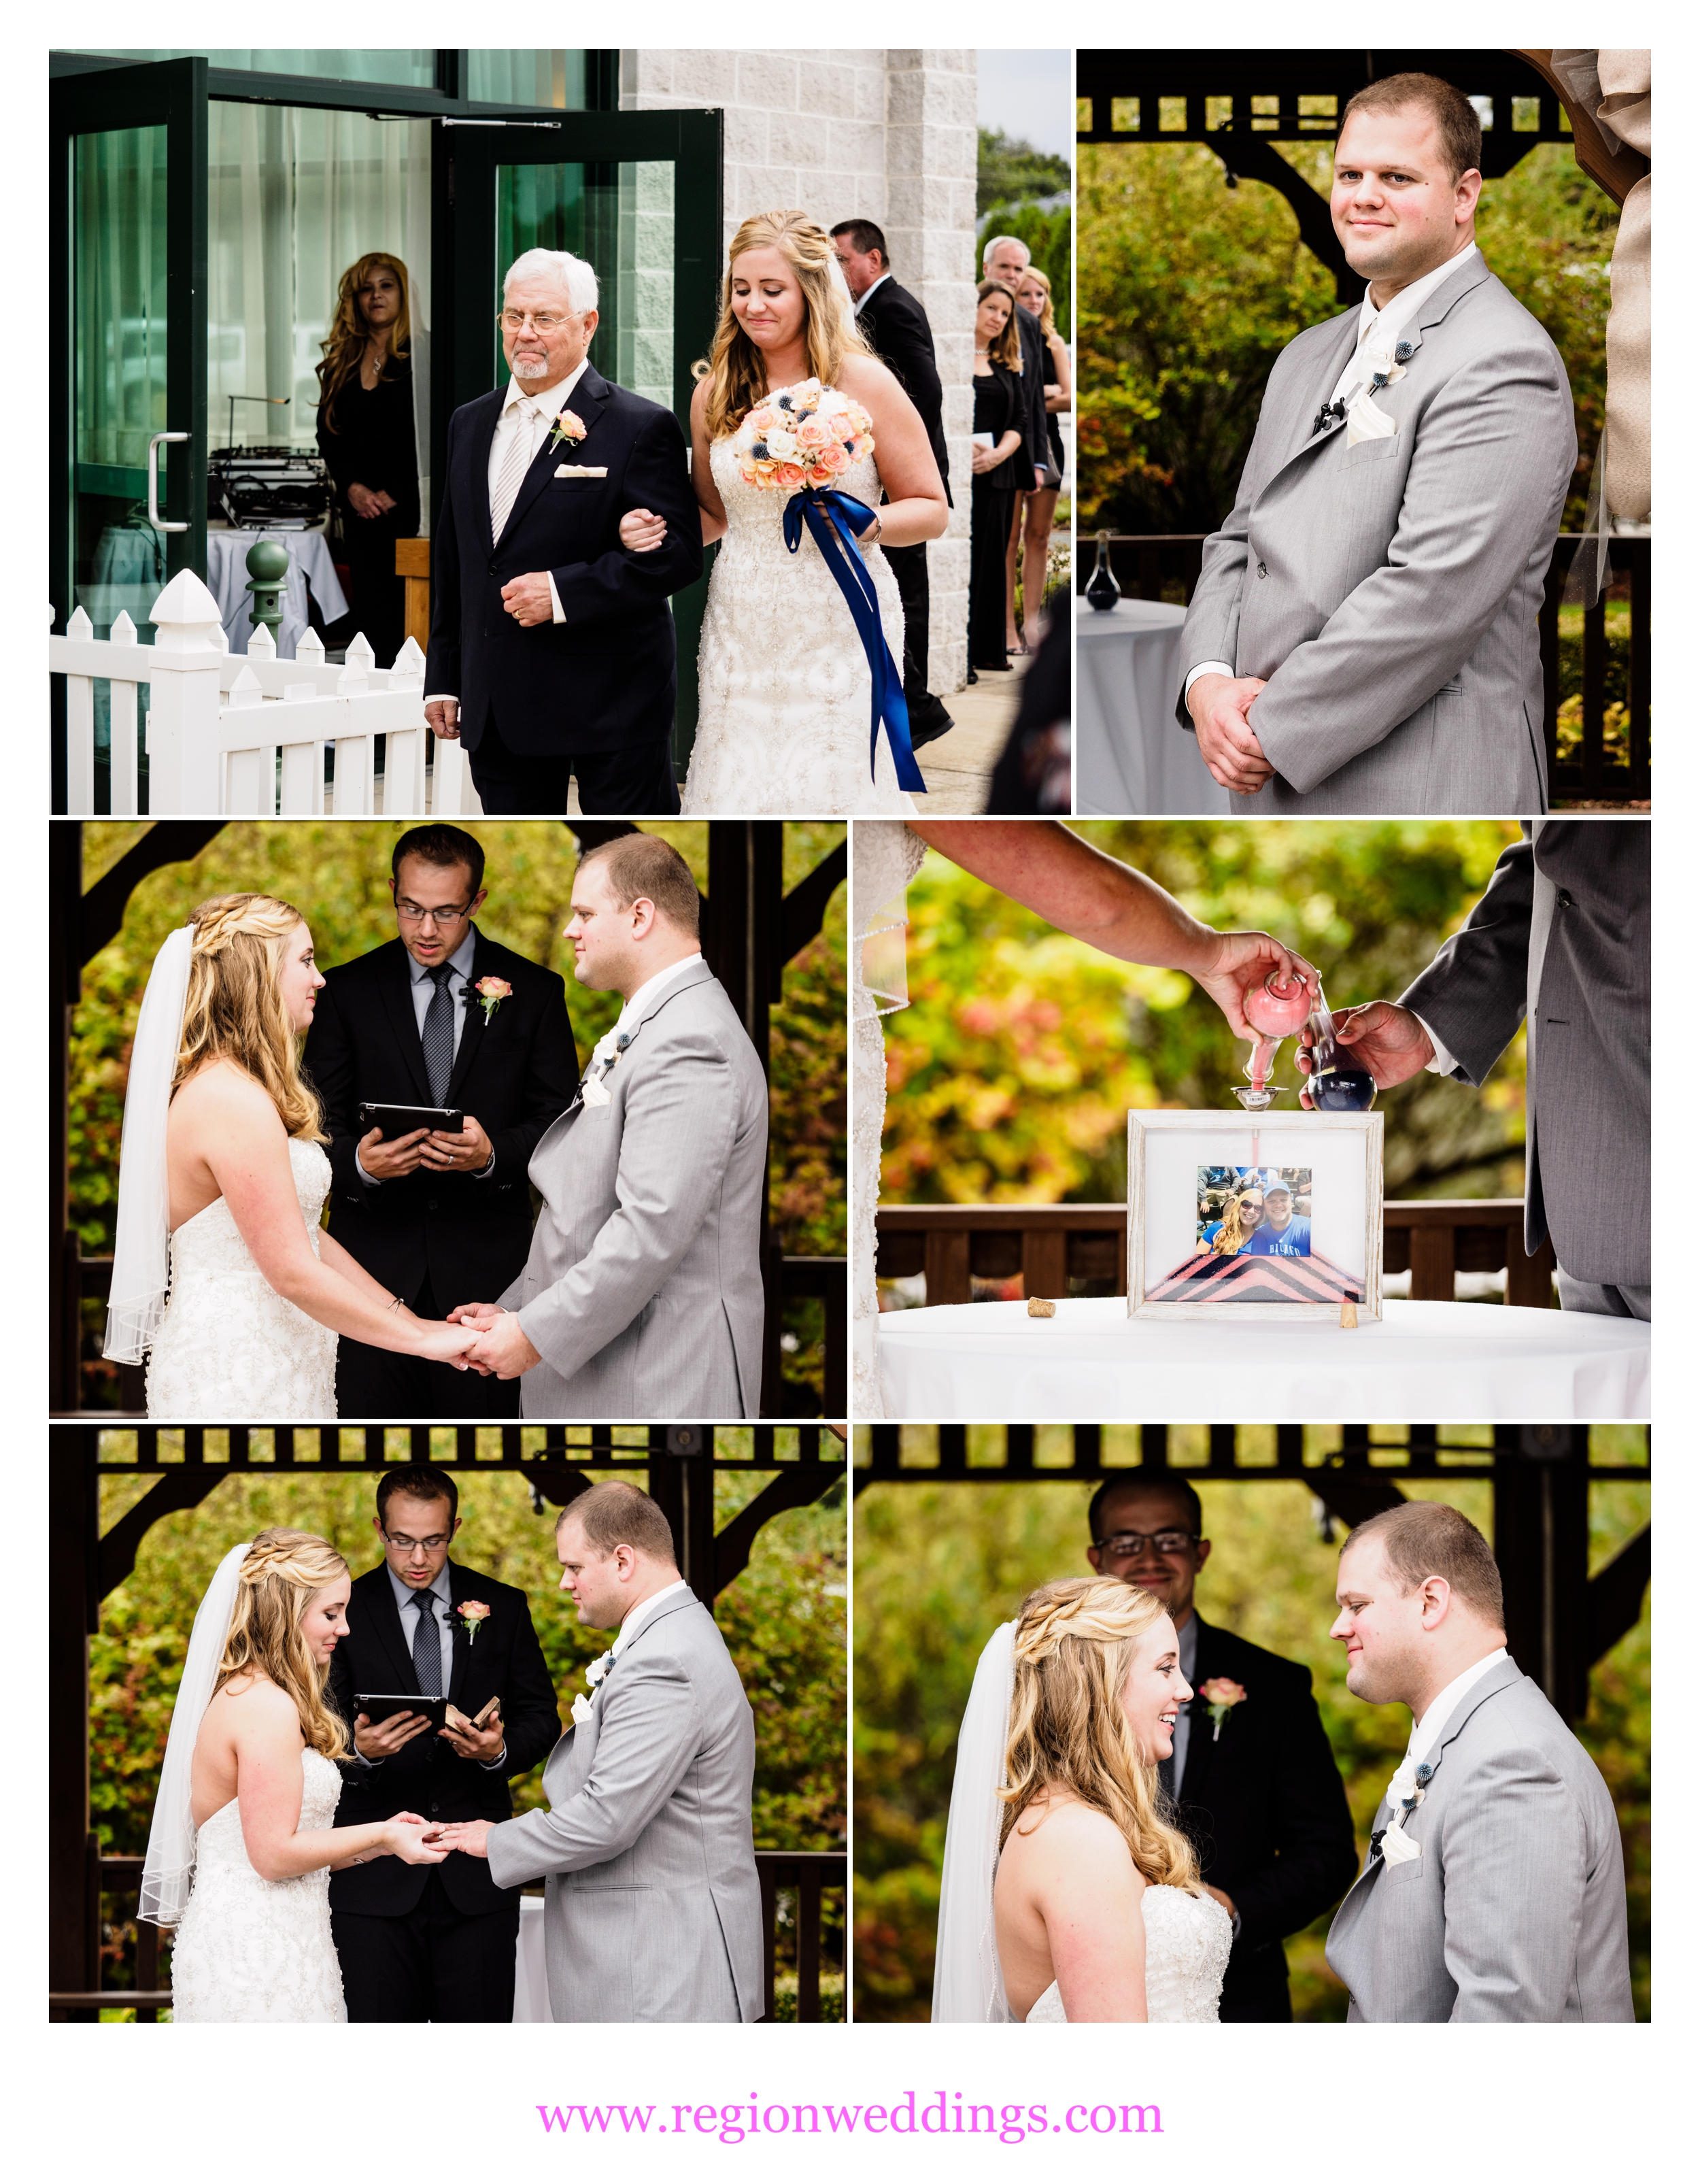 An outdoor October wedding ceremony at The Patrician.